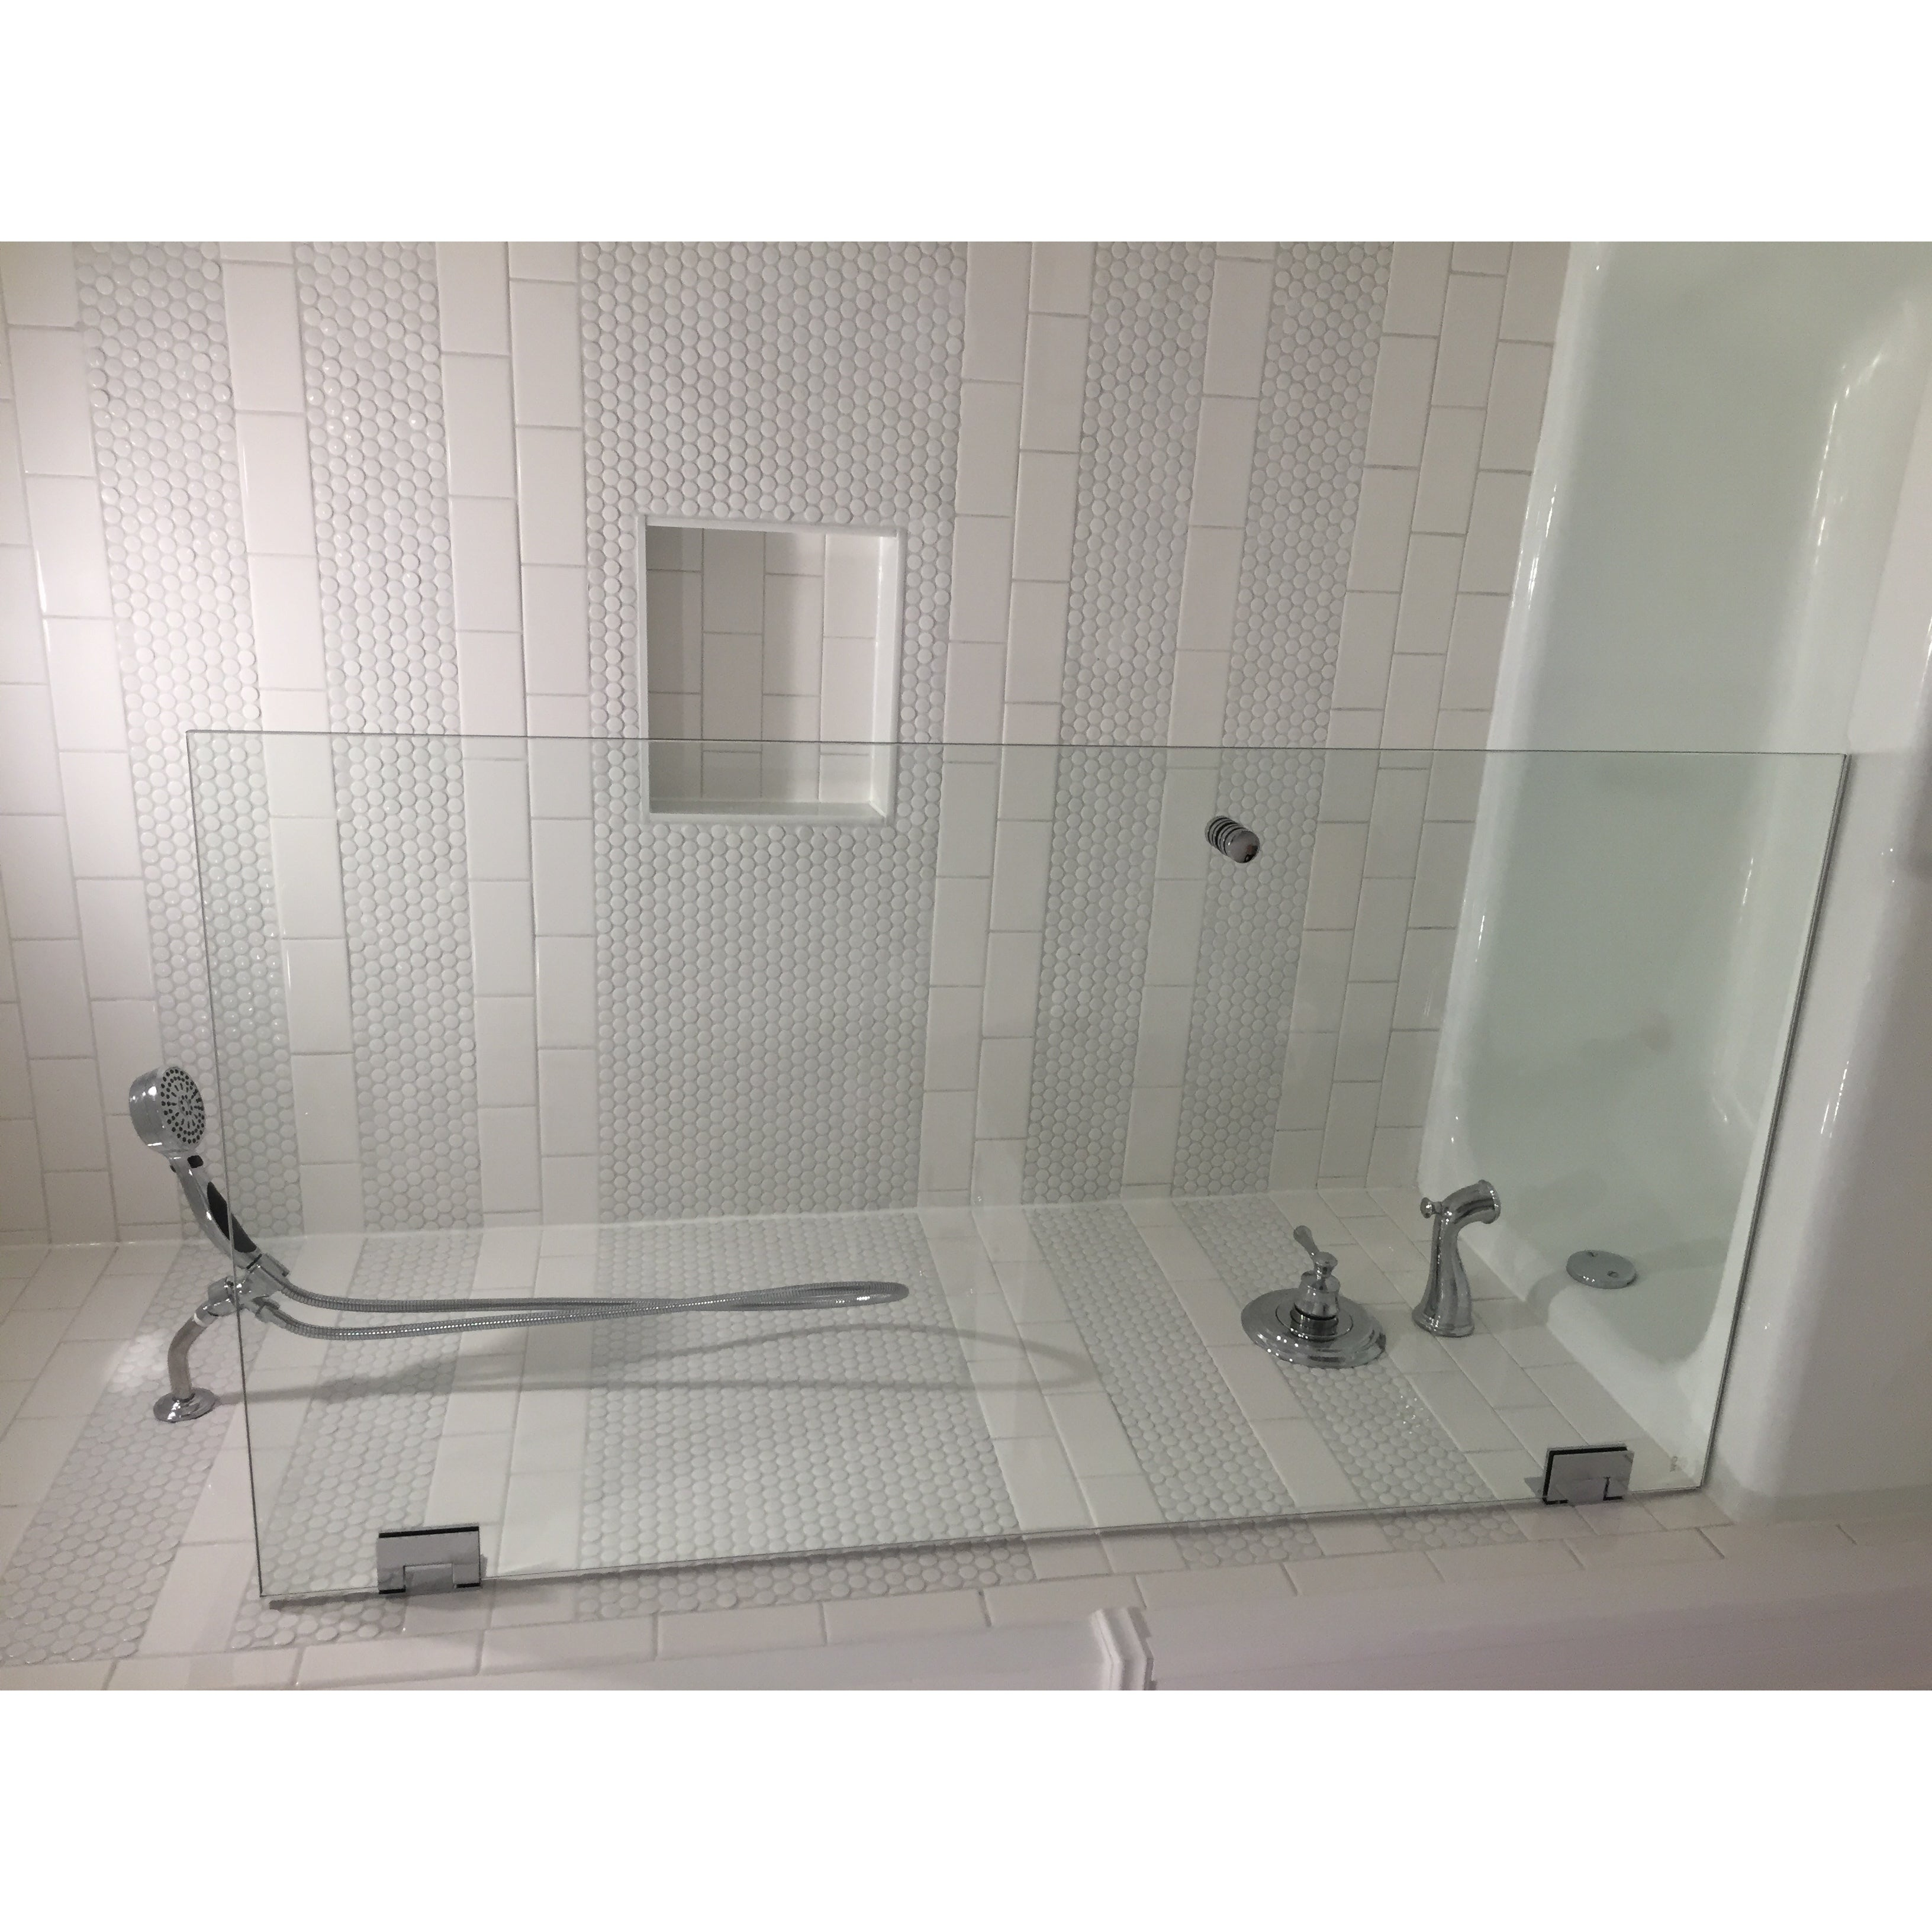 Shower Bath Base shop glass warehouse clear glass frameless shower bath door - free